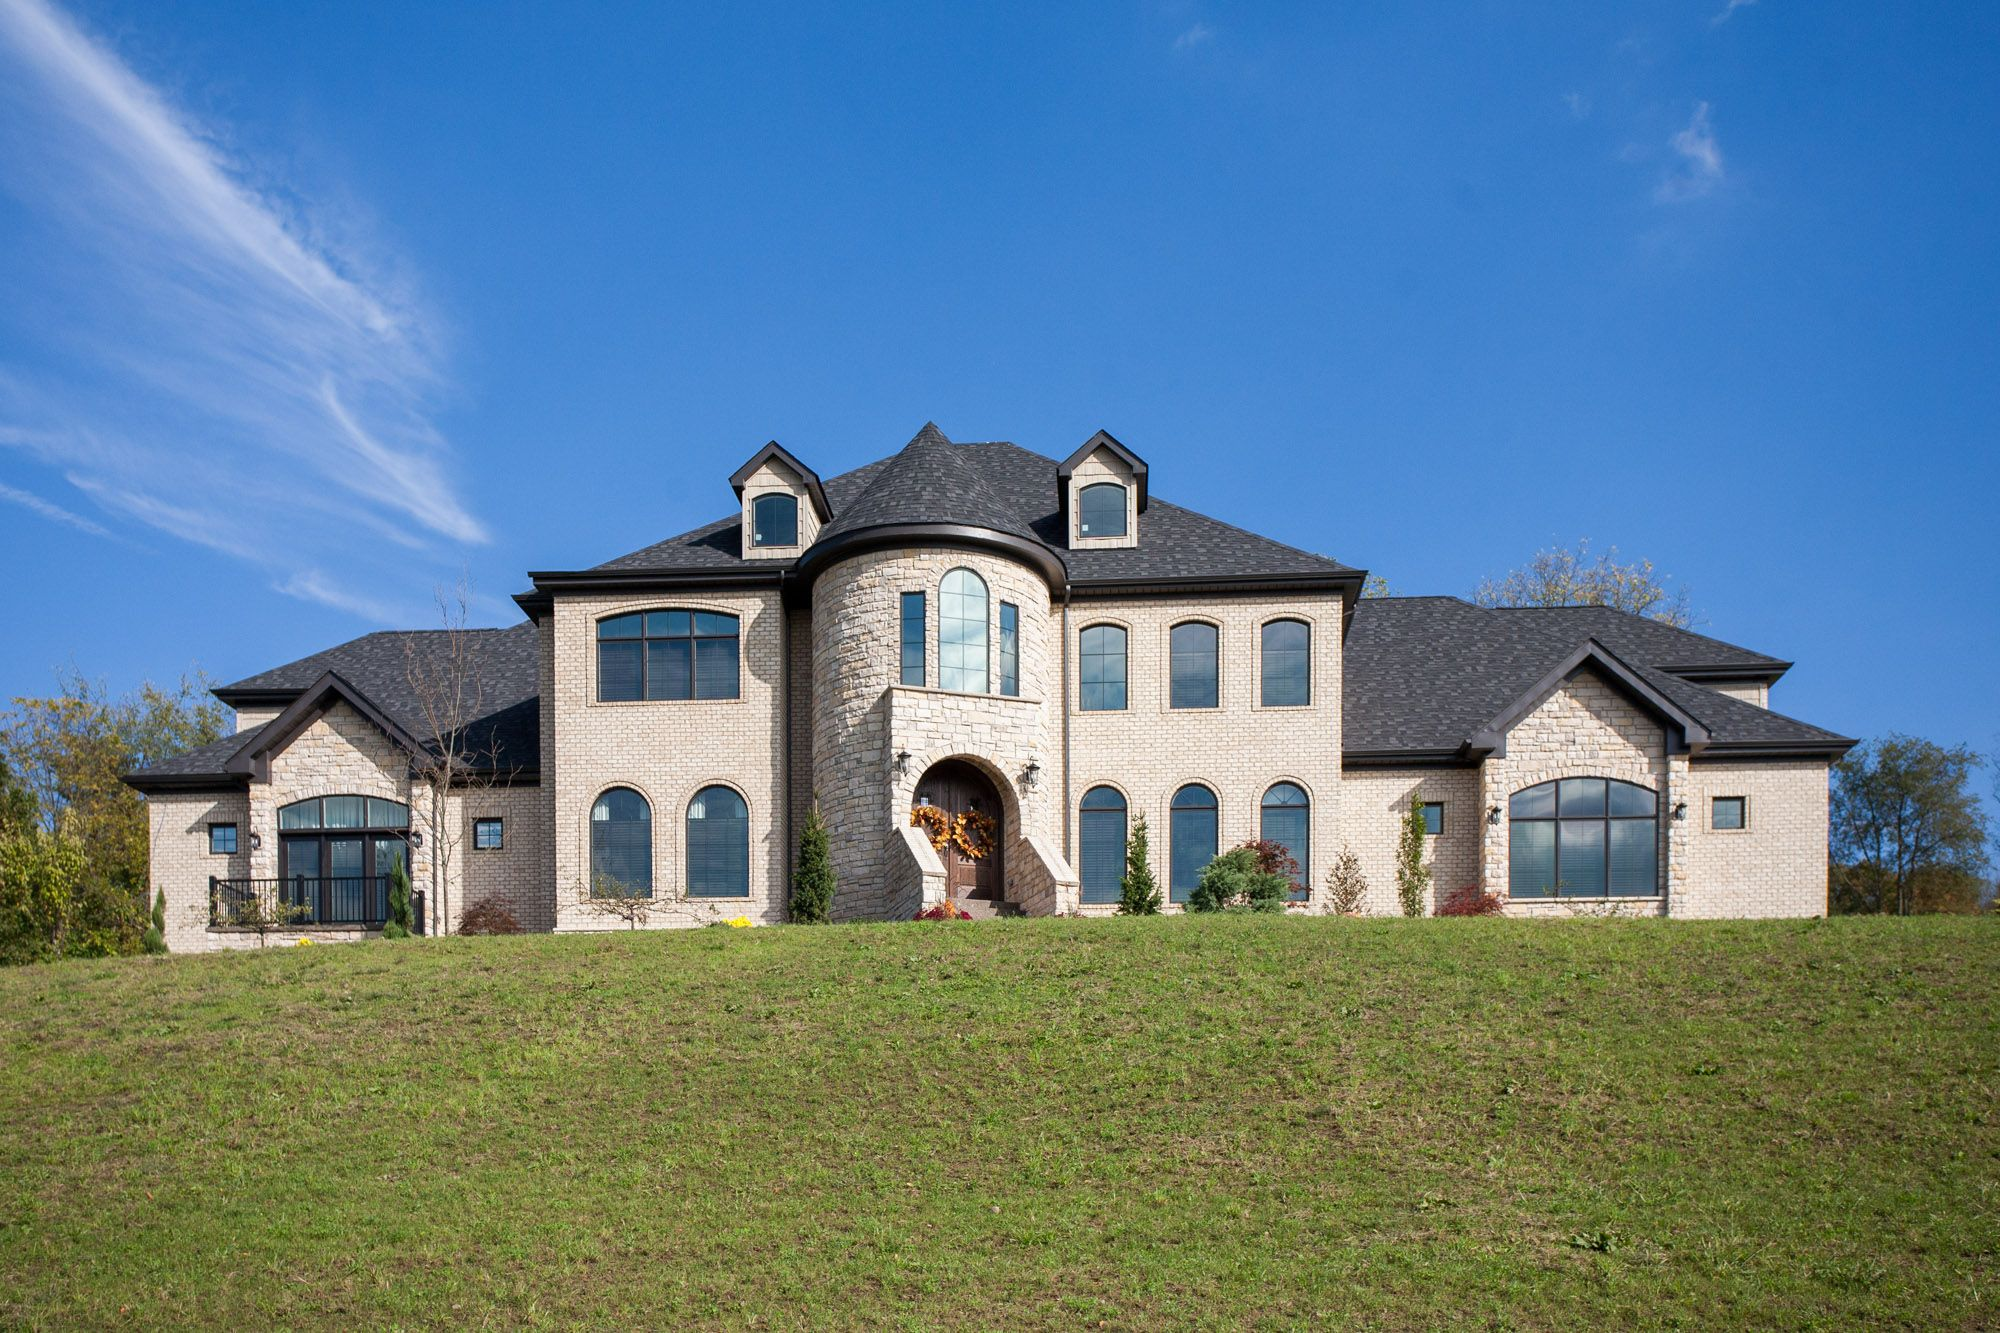 Amazing New Build By Benjamin Marcus Homes In The Pittsburgh Area Housetrends New Homes Home Home Trends